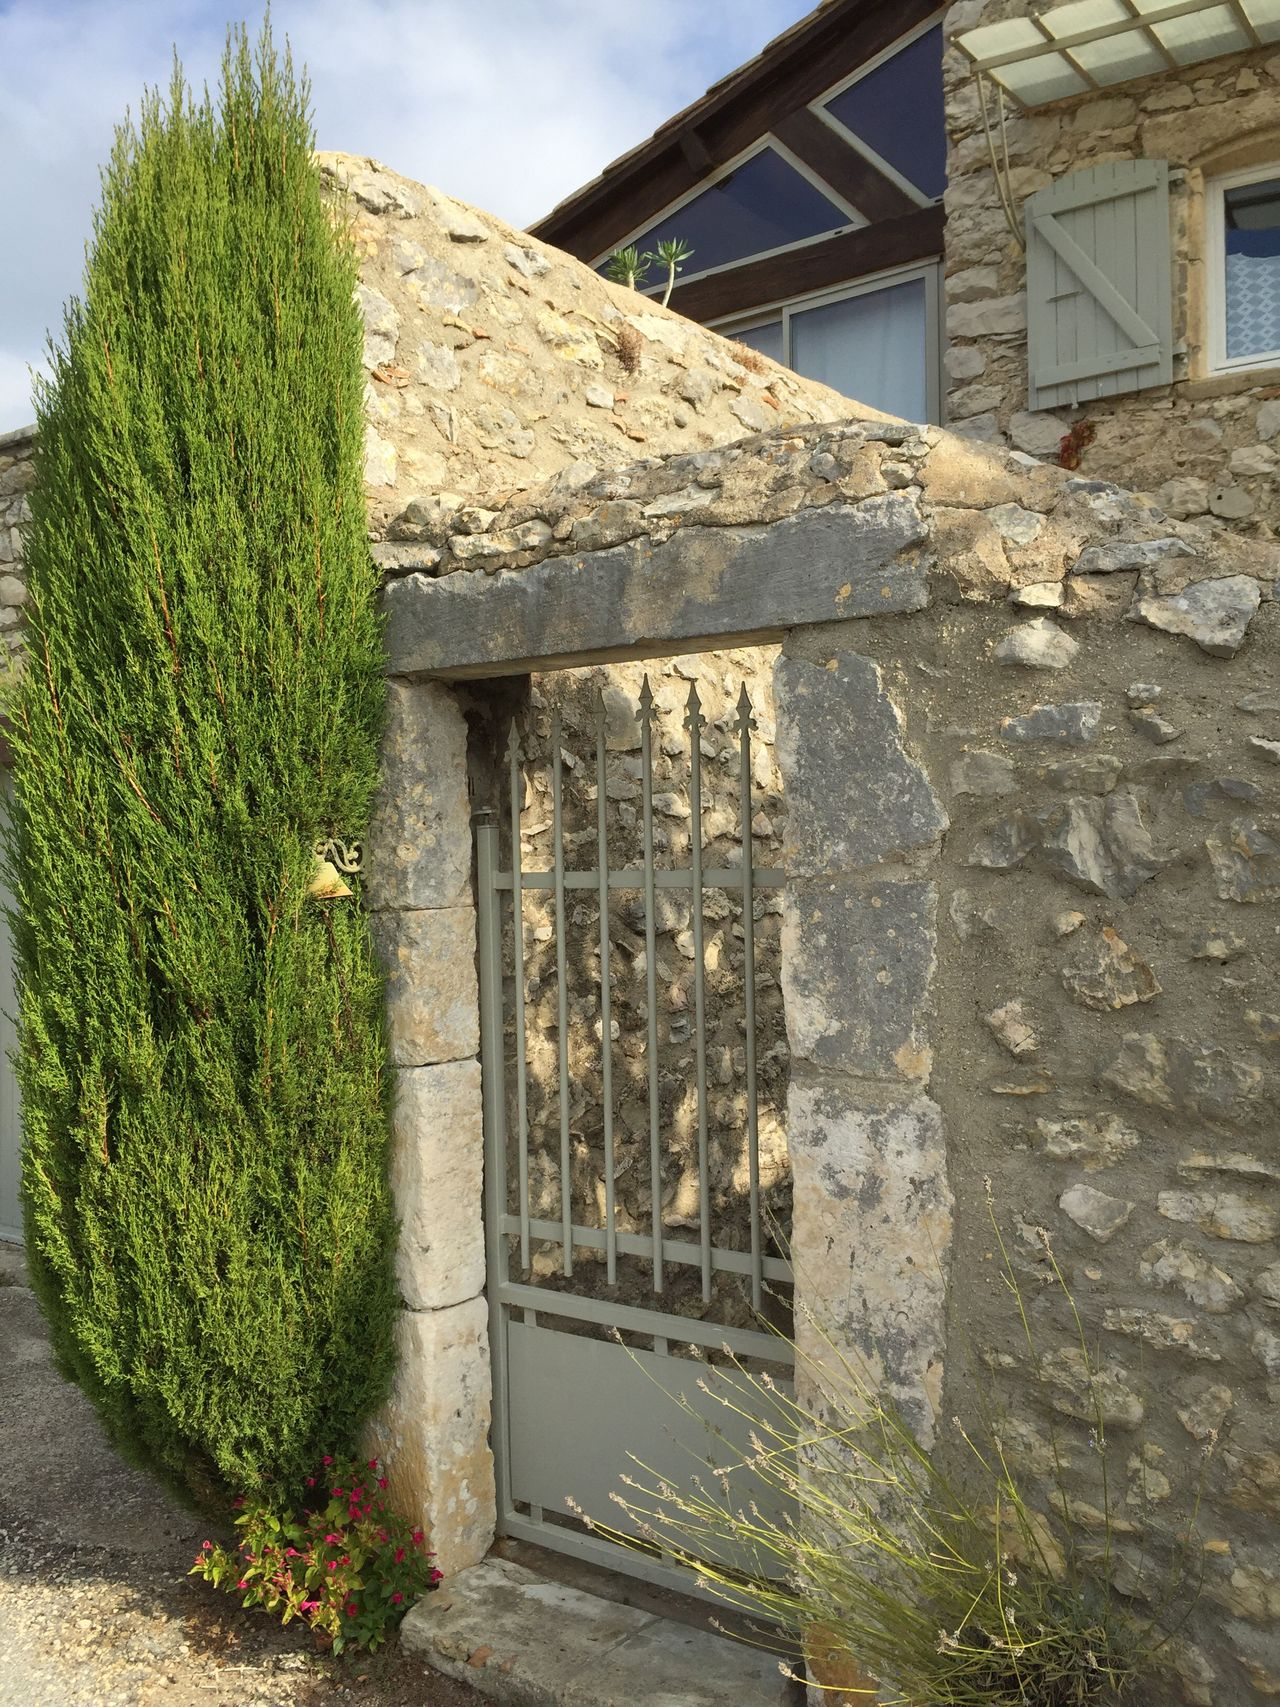 France Occitanie Gard Lussan Village Village Life Architecture Built Structure Building Exterior No People House Day Outdoors Nature Sky Enjoying Life